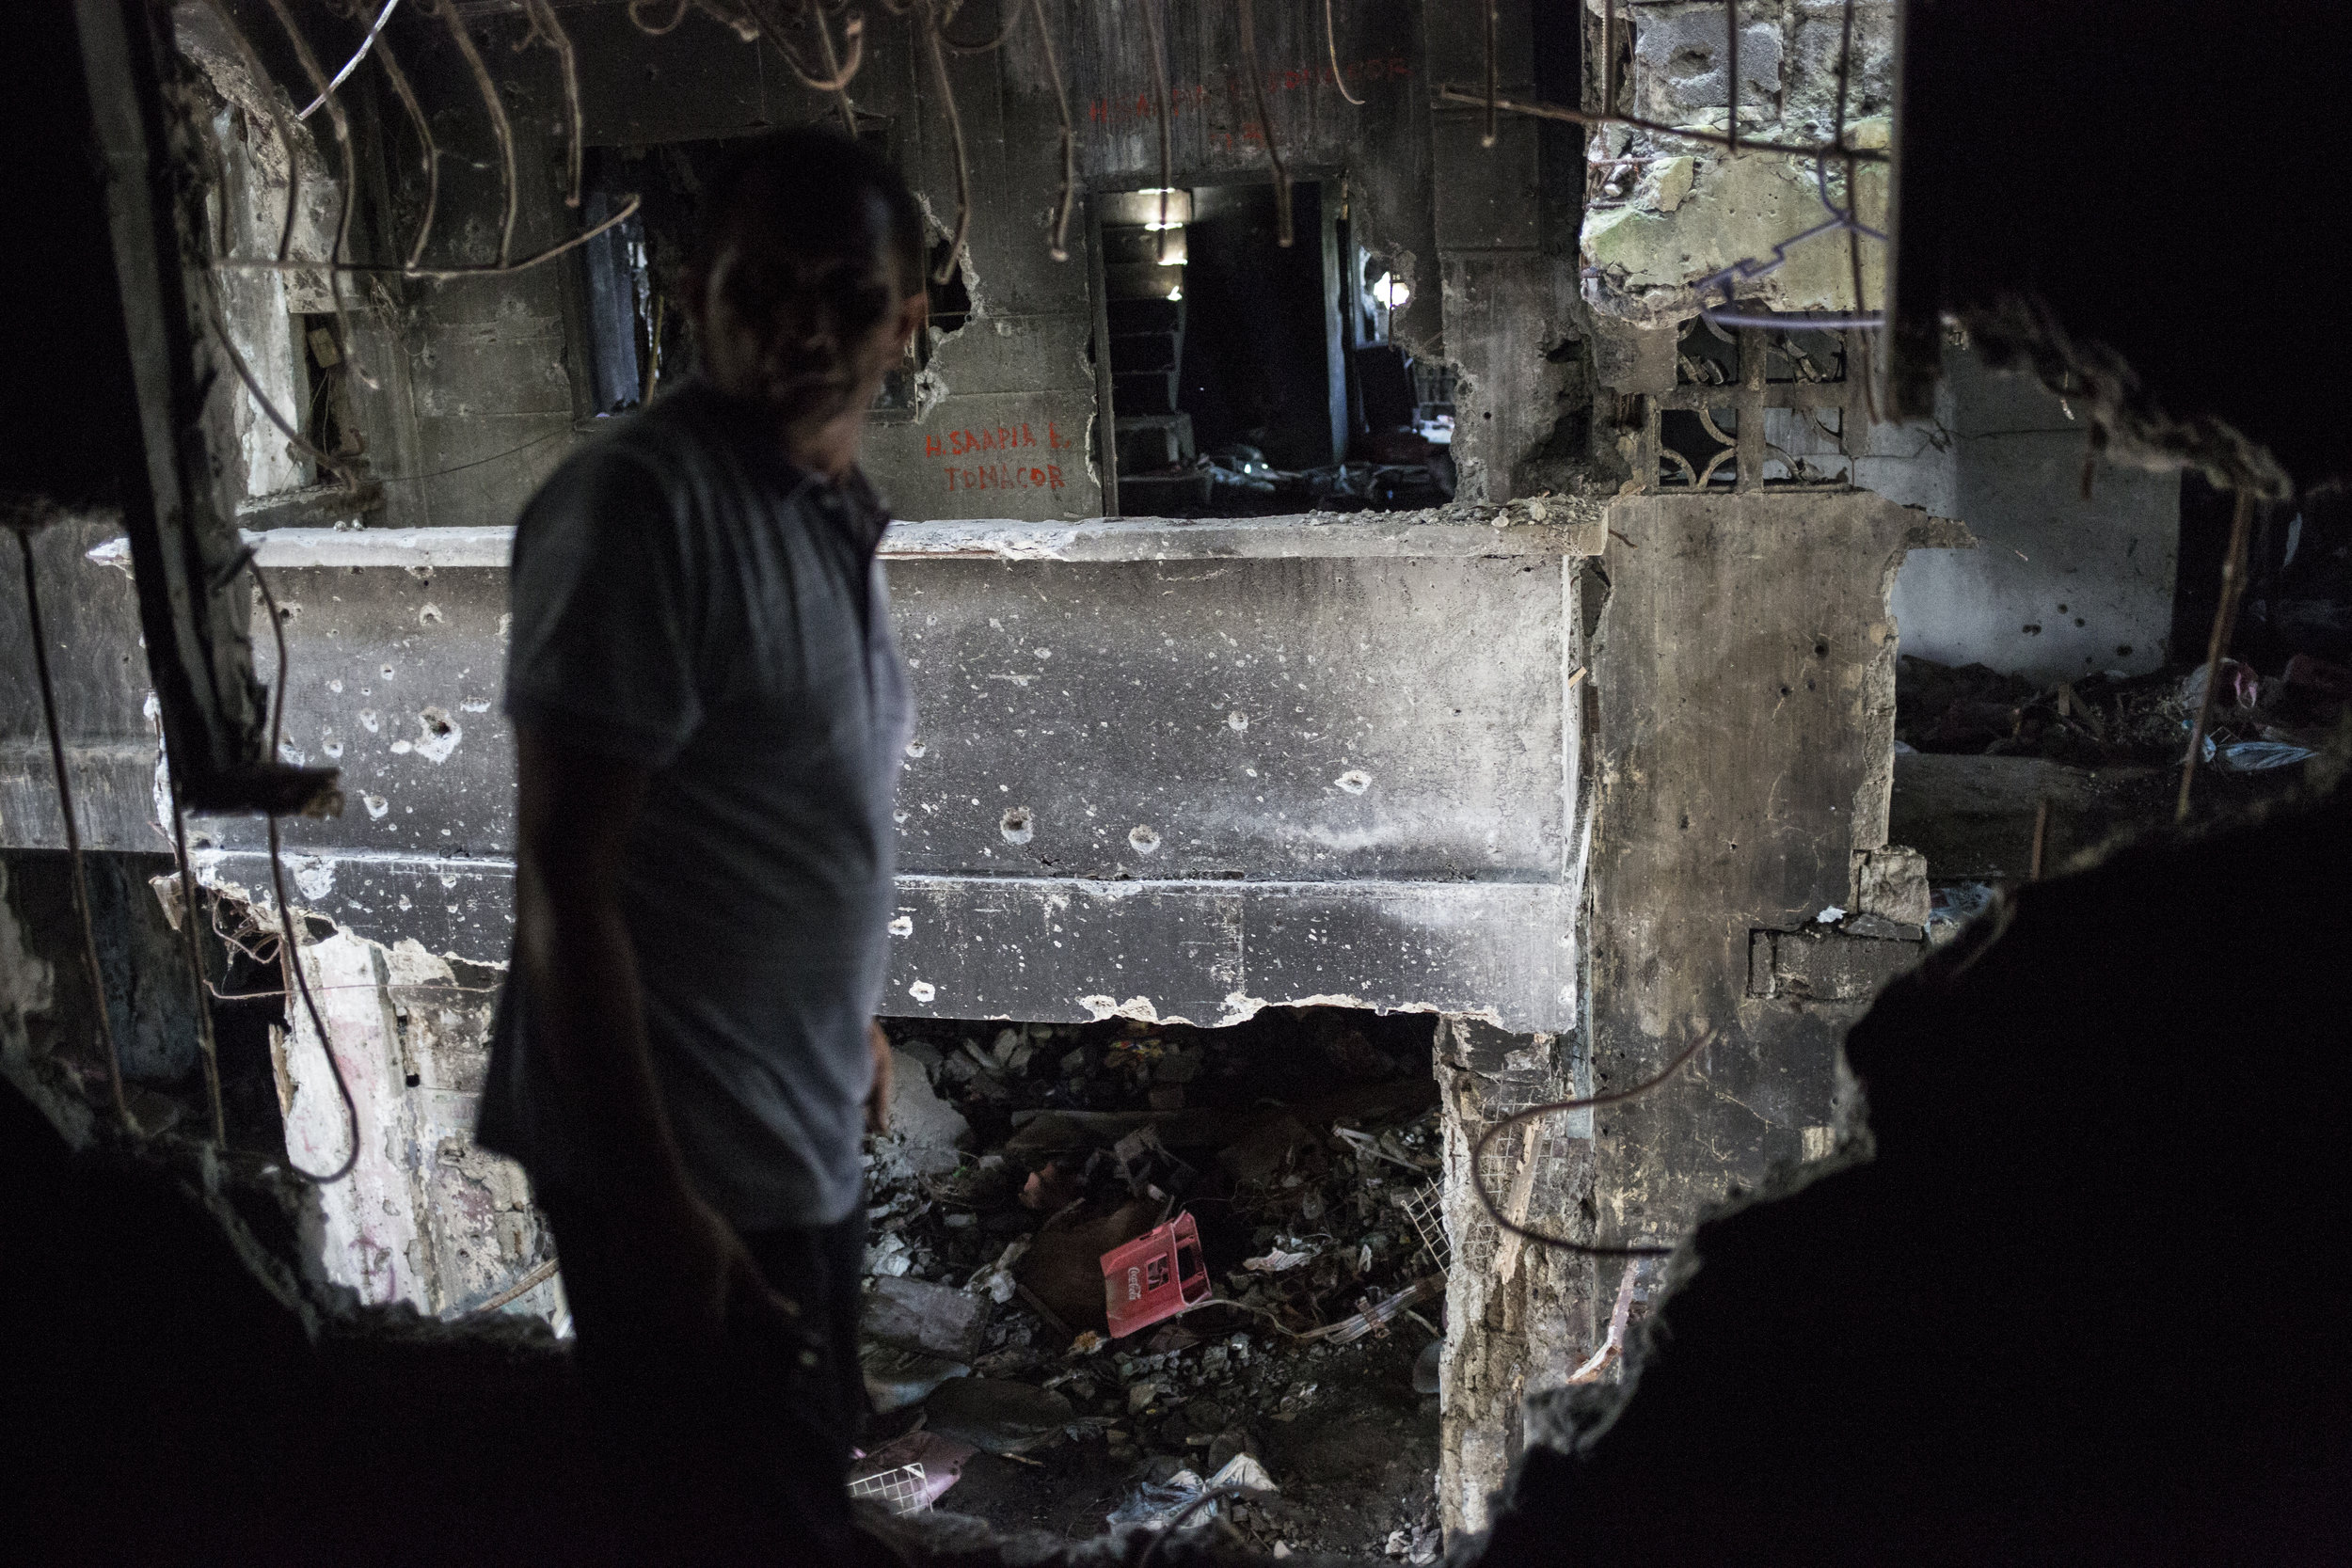 ISIS_In_The_Philippines (13 of 22).jpg